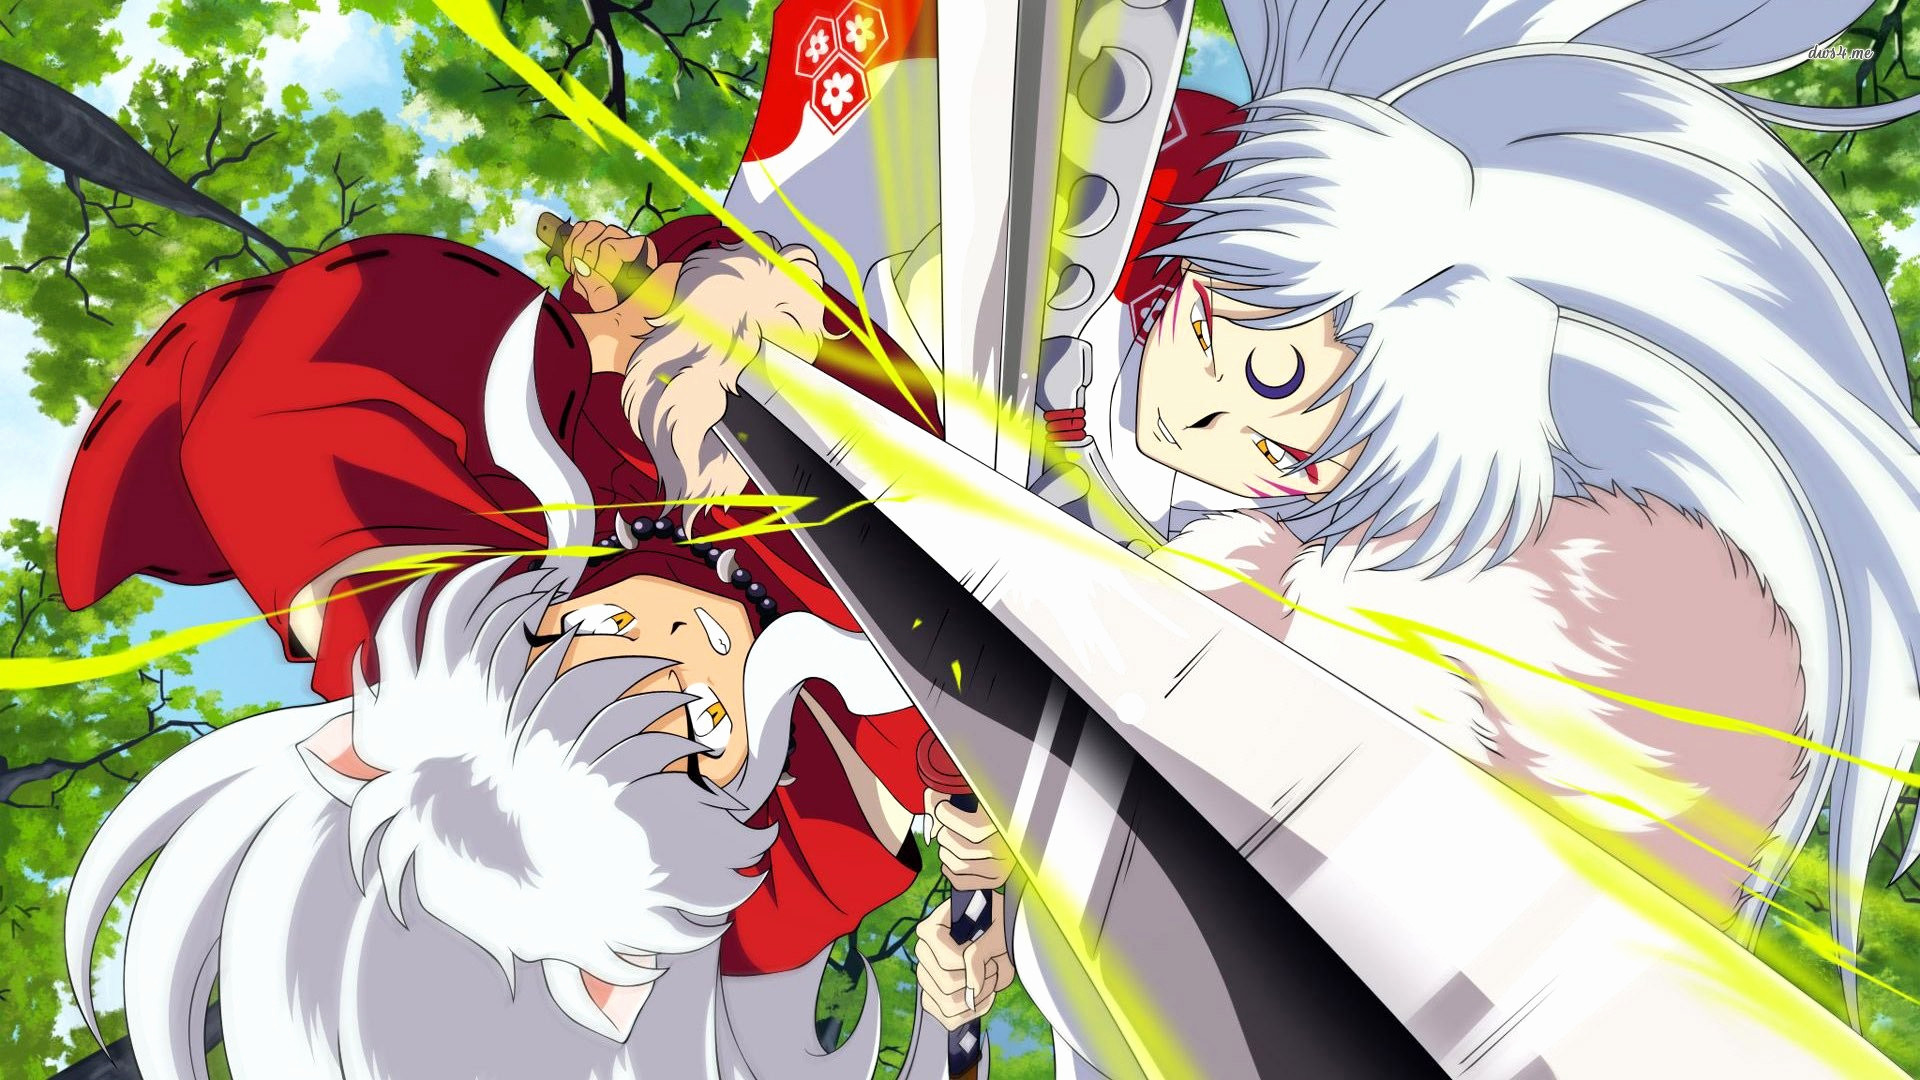 Res: 1920x1080, Inuyasha and Kagome Wallpaper – Inuyasha Wallpaper Download Free Amazing  Wallpapers for D